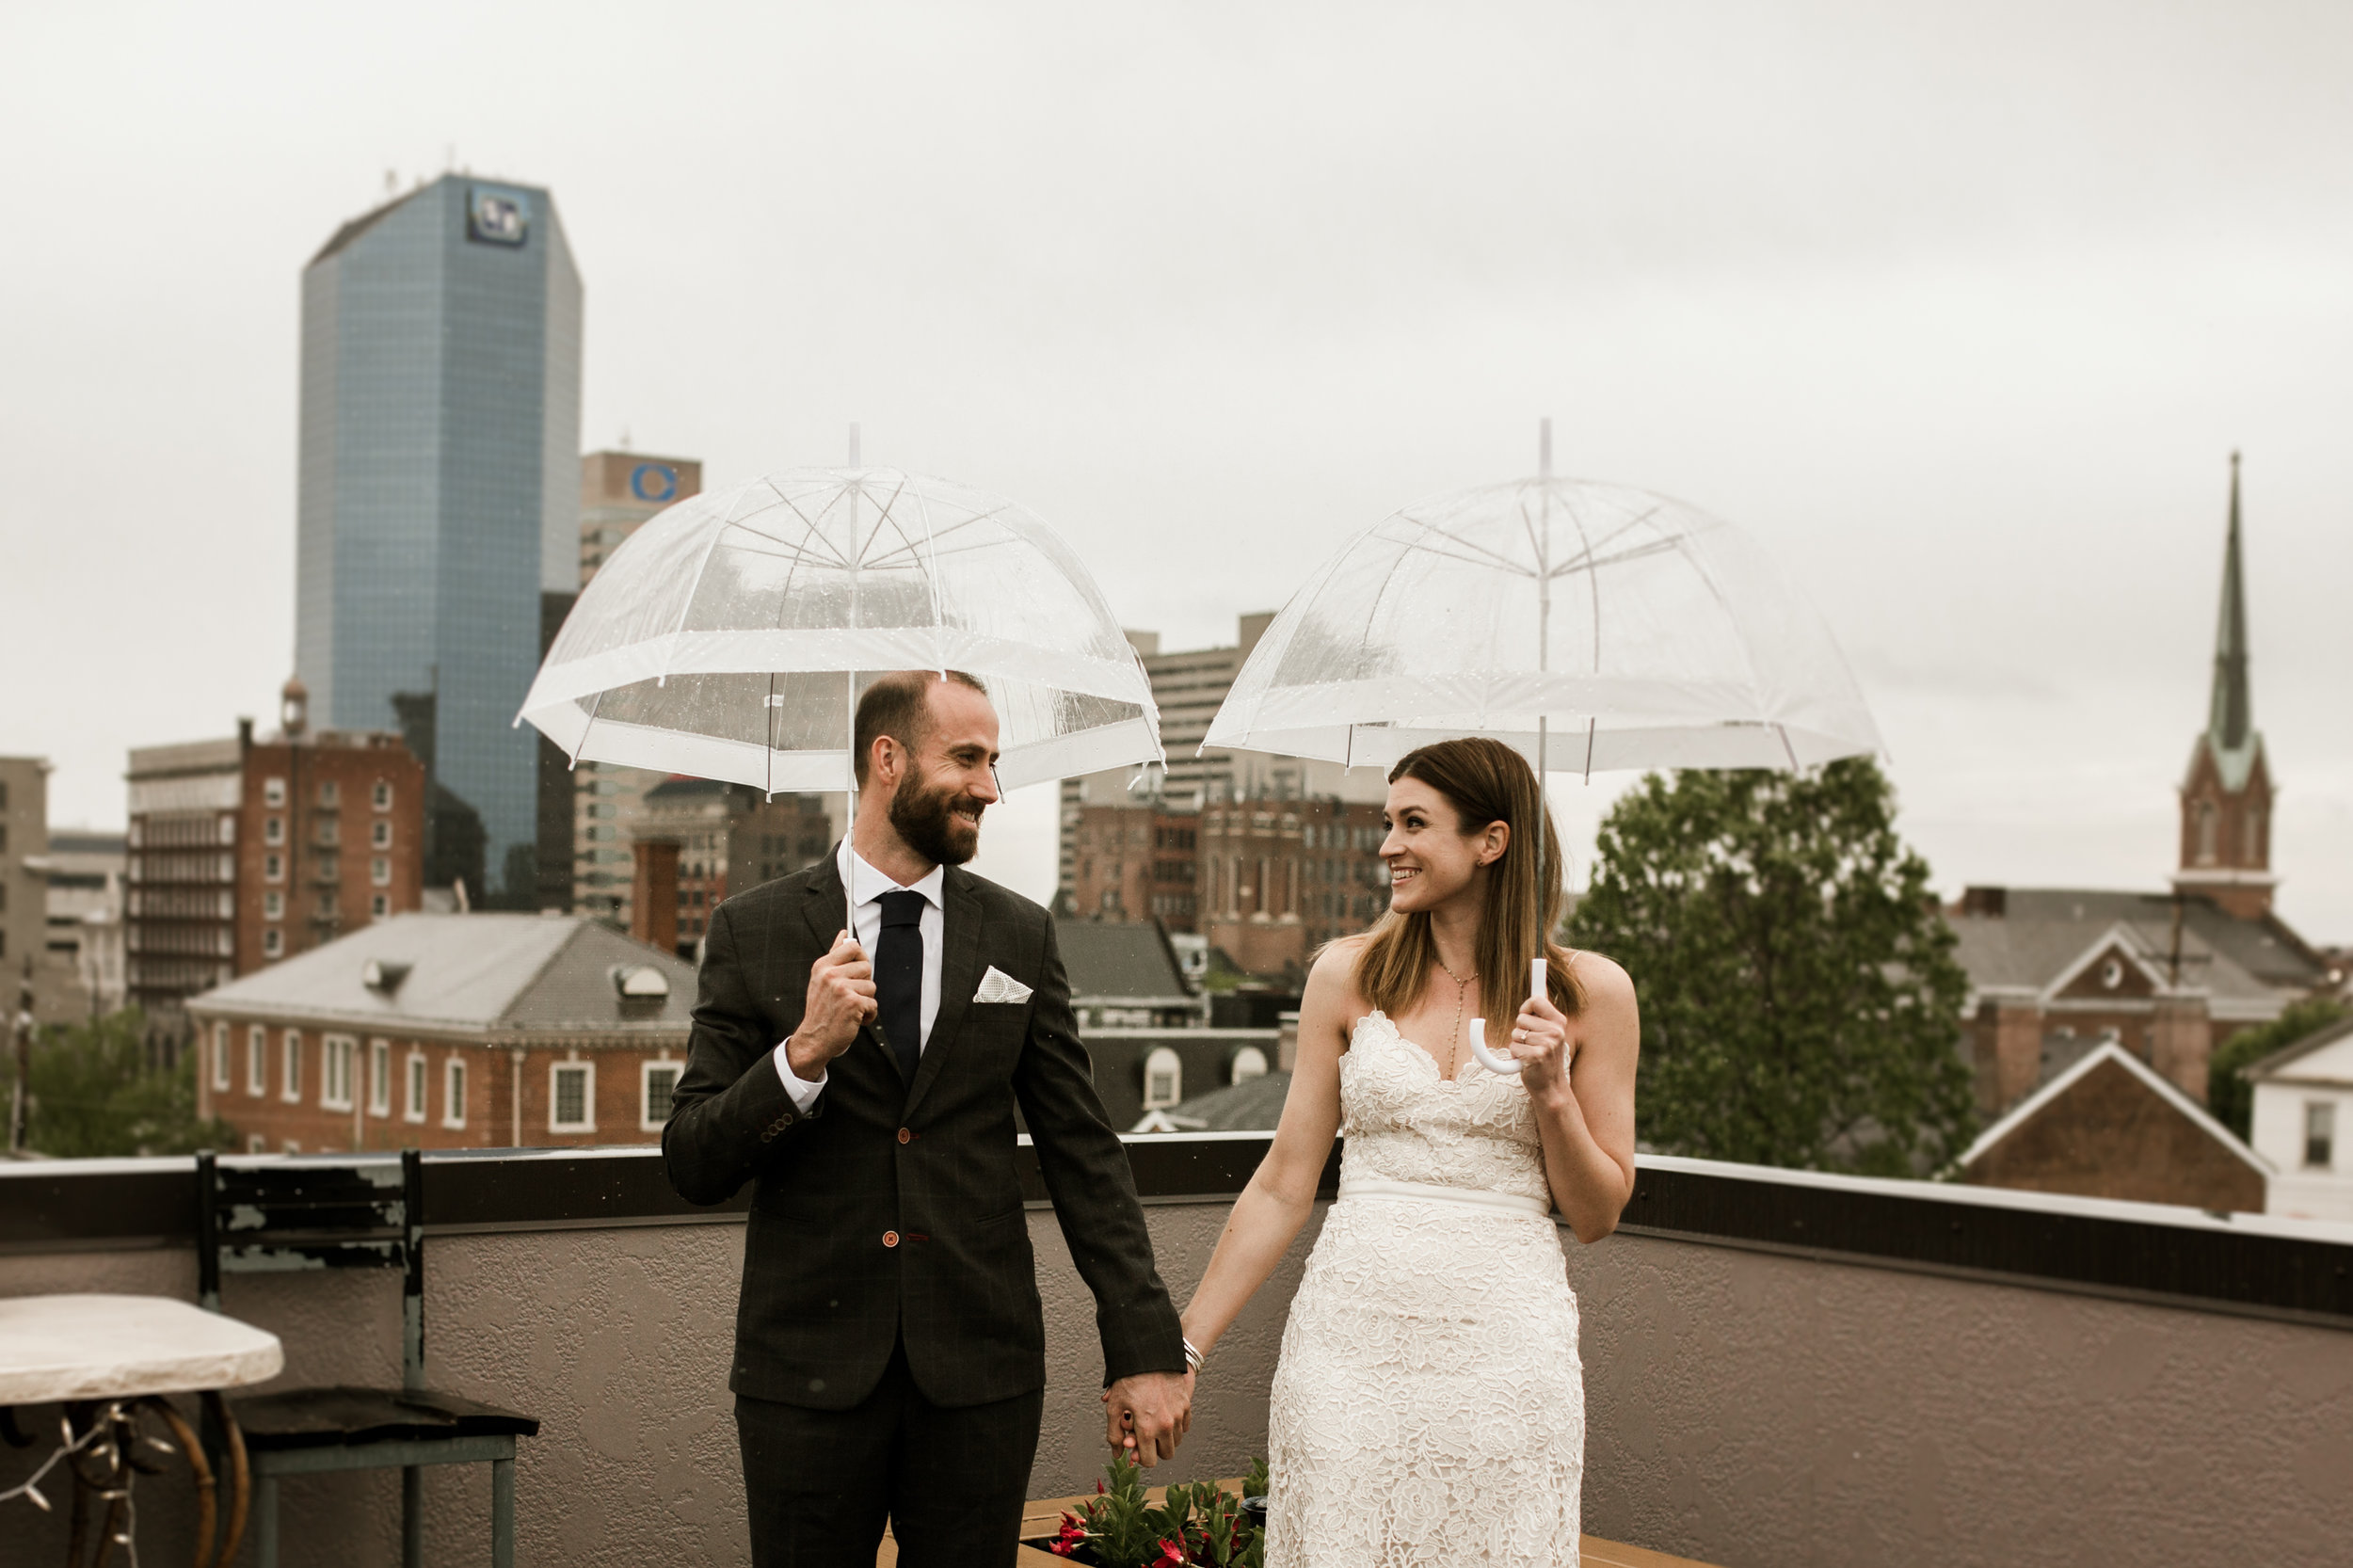 Louisville Courthouse Wedding Louisville Wedding Photographer 2018 Crystal Ludwick Photo Louisville Wedding Photographer Kentucky Wedding Photographer (20 of 76).jpg